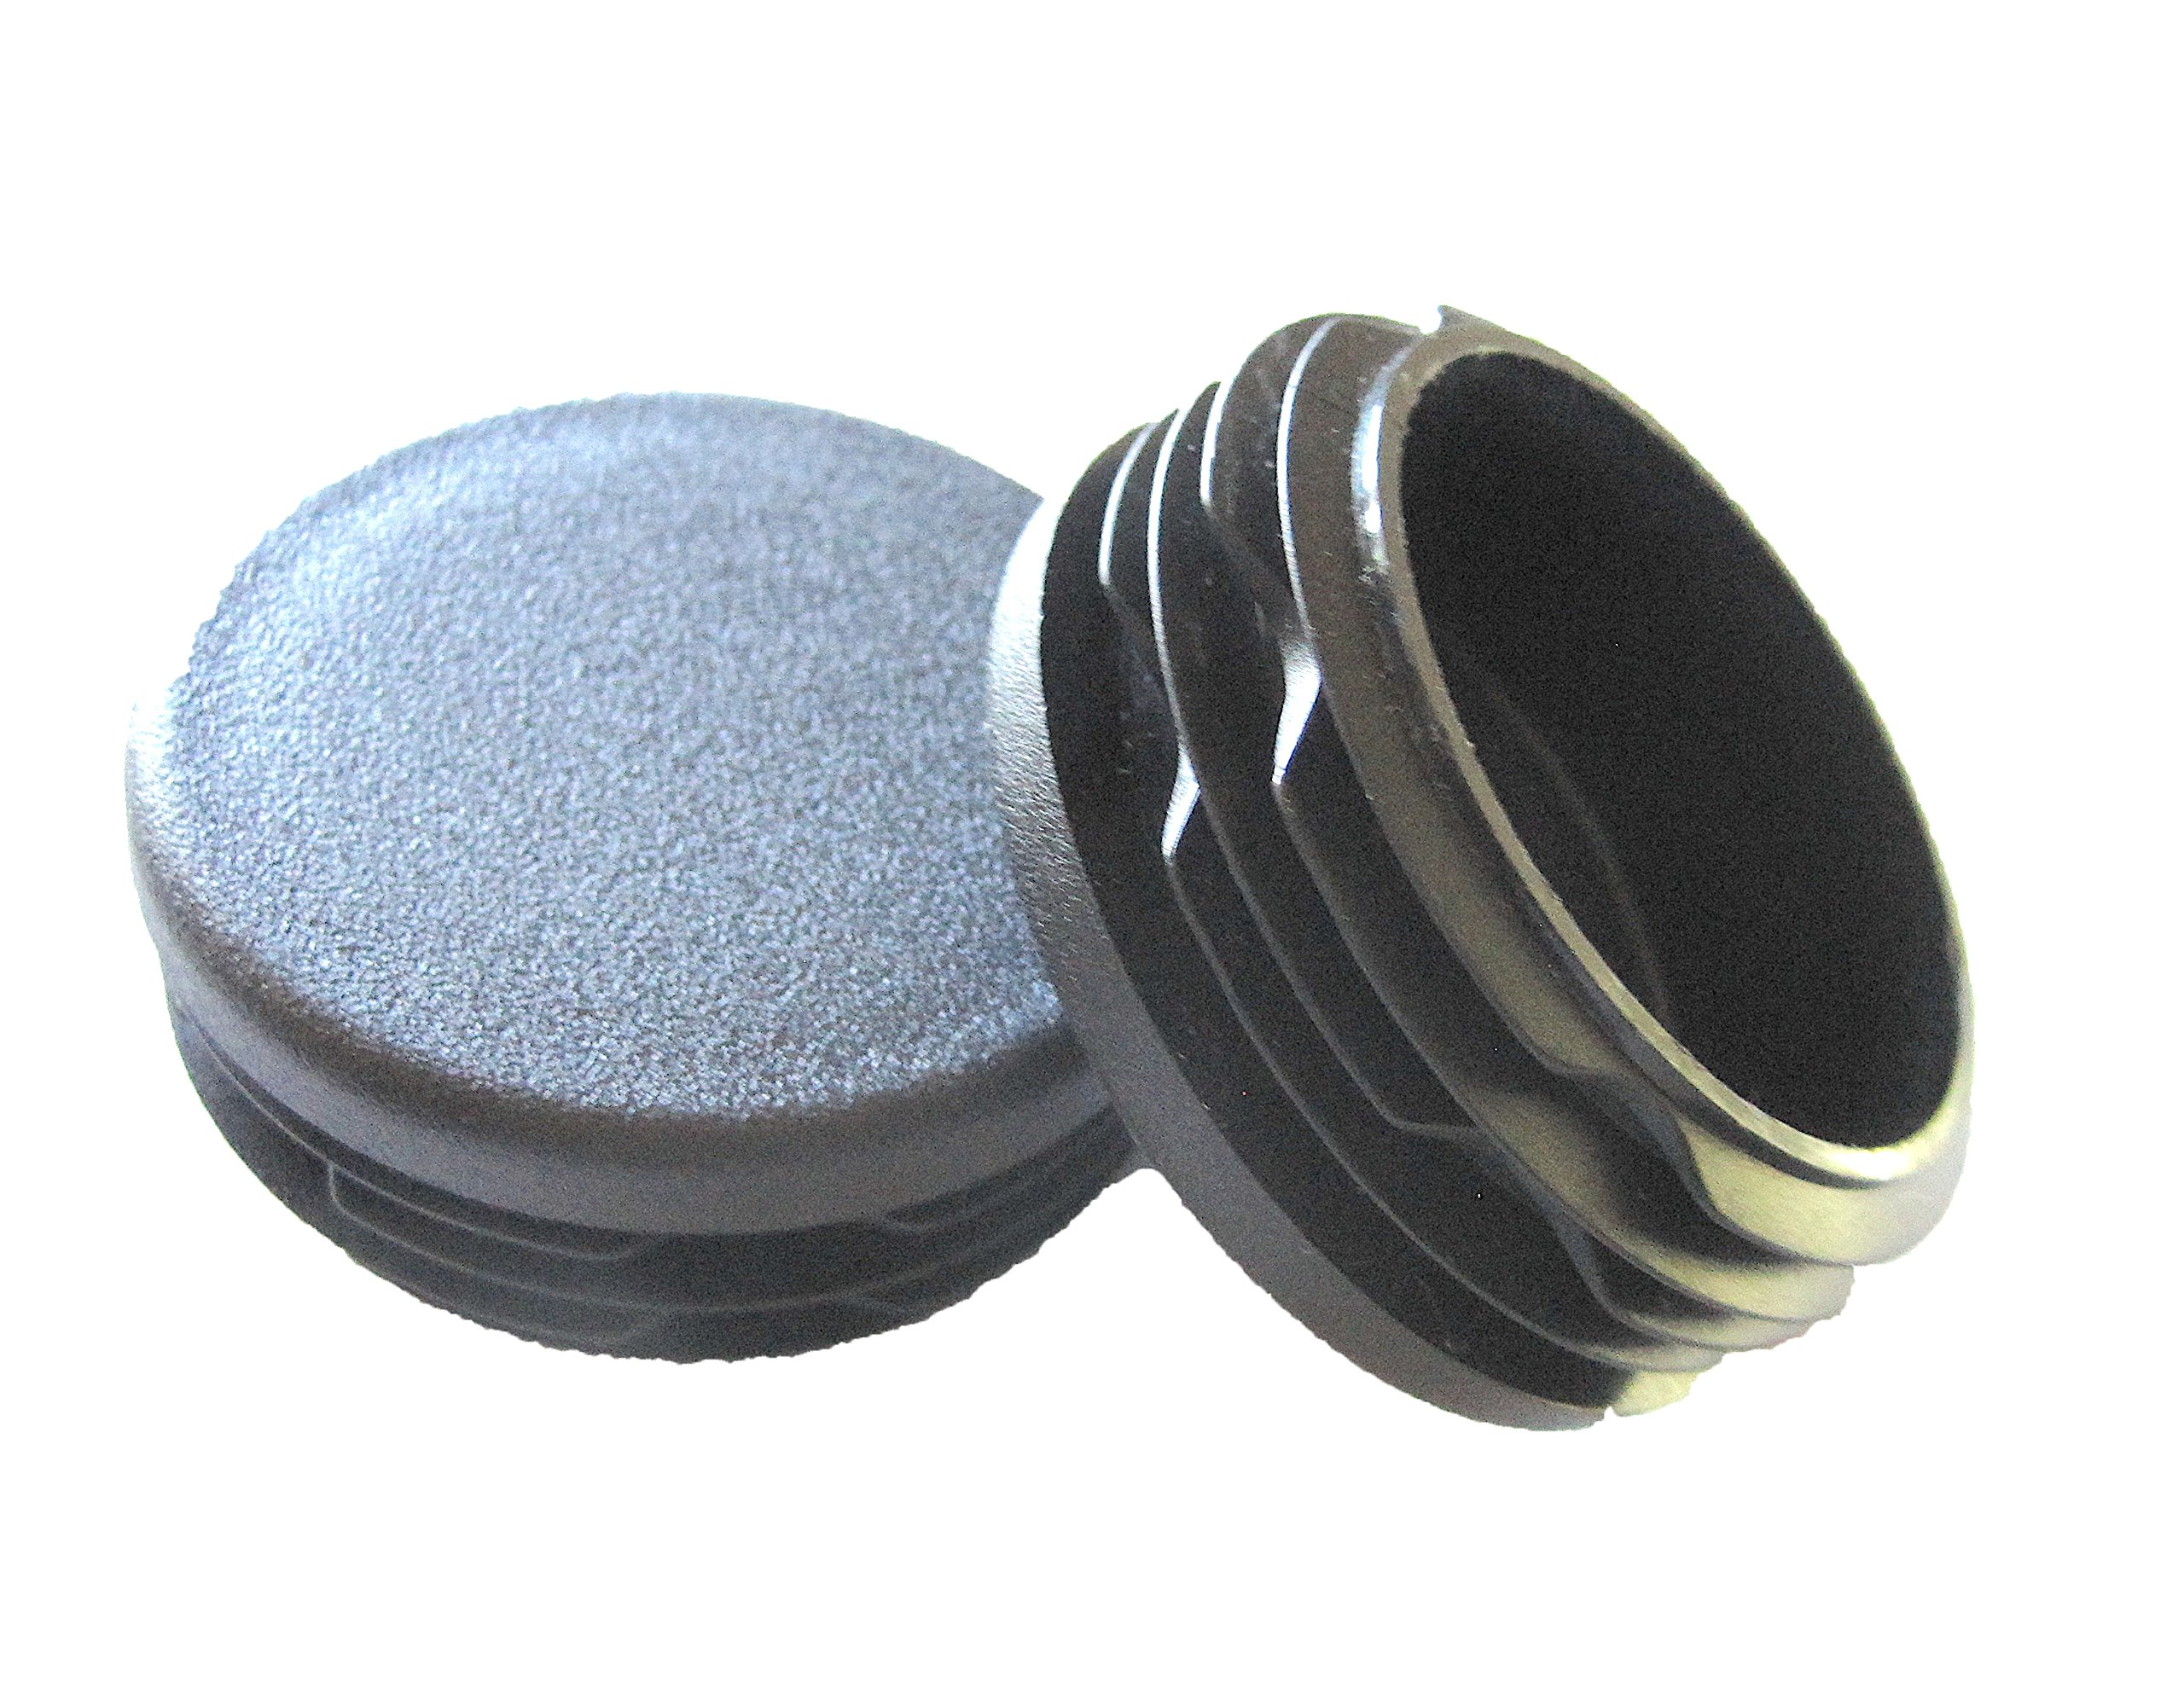 4 Pack: 1 3/4 inch Round Plastic Plug, Pipe Tubing End Cap, Durable Chair Glide